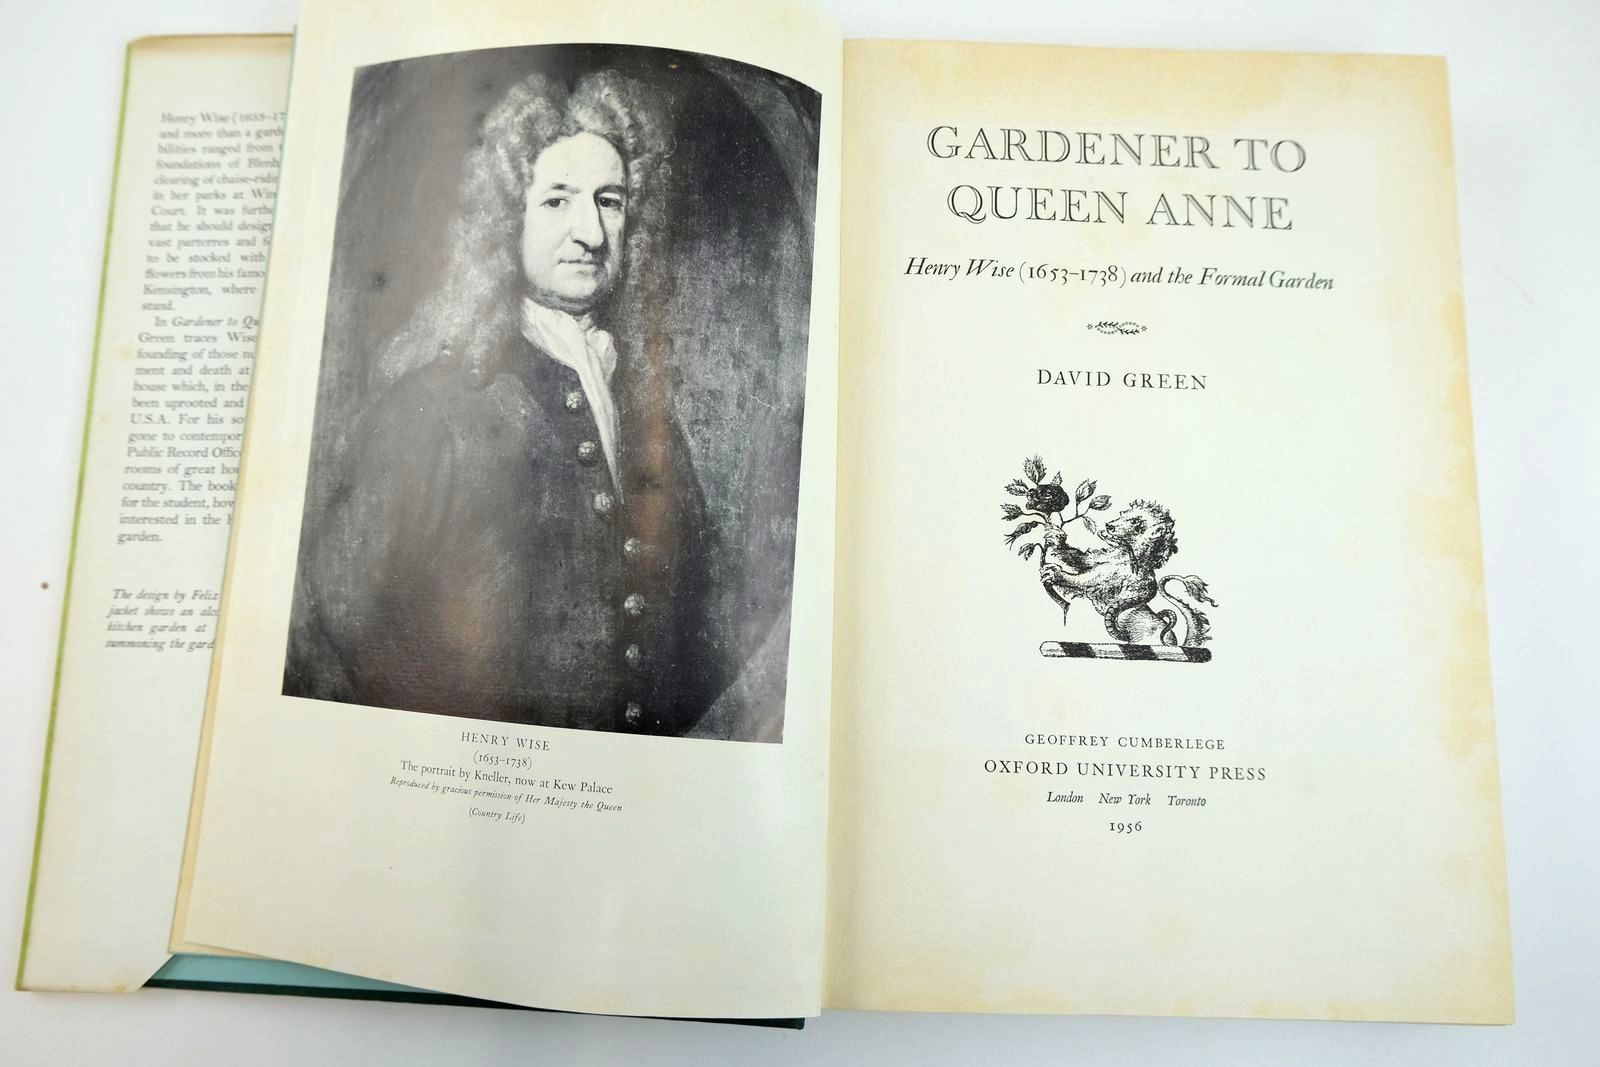 Photo of GARDENER TO QUEEN ANNE HENRY WISE (1653-1738) AND THE FORMAL GARDEN written by Green, David published by Oxford University Press, Geoffrey Cumberlege (STOCK CODE: 2132201)  for sale by Stella & Rose's Books